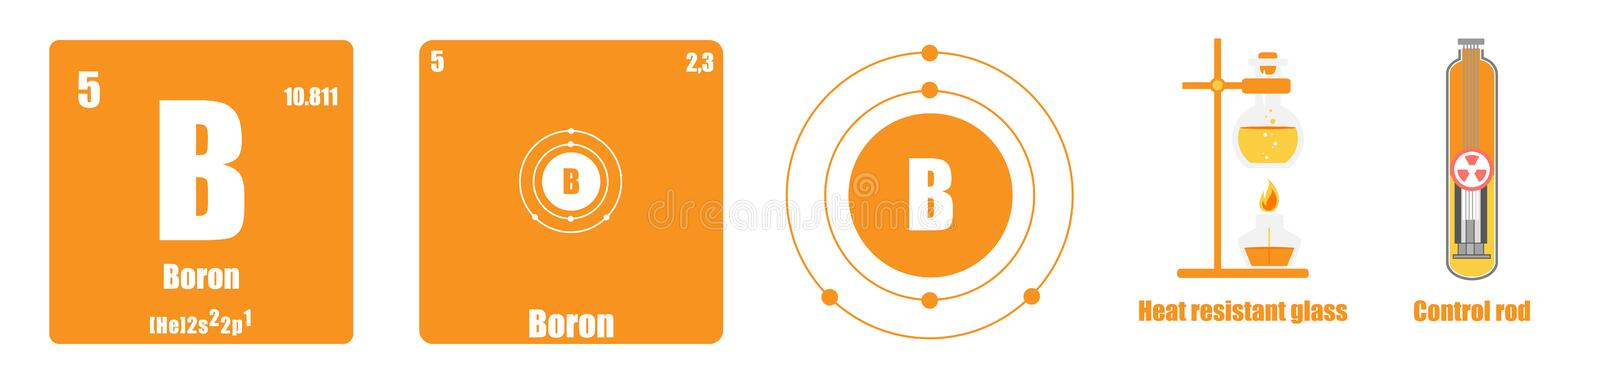 Periodic Table of element group III. Boron illustration vector flat royalty free illustration